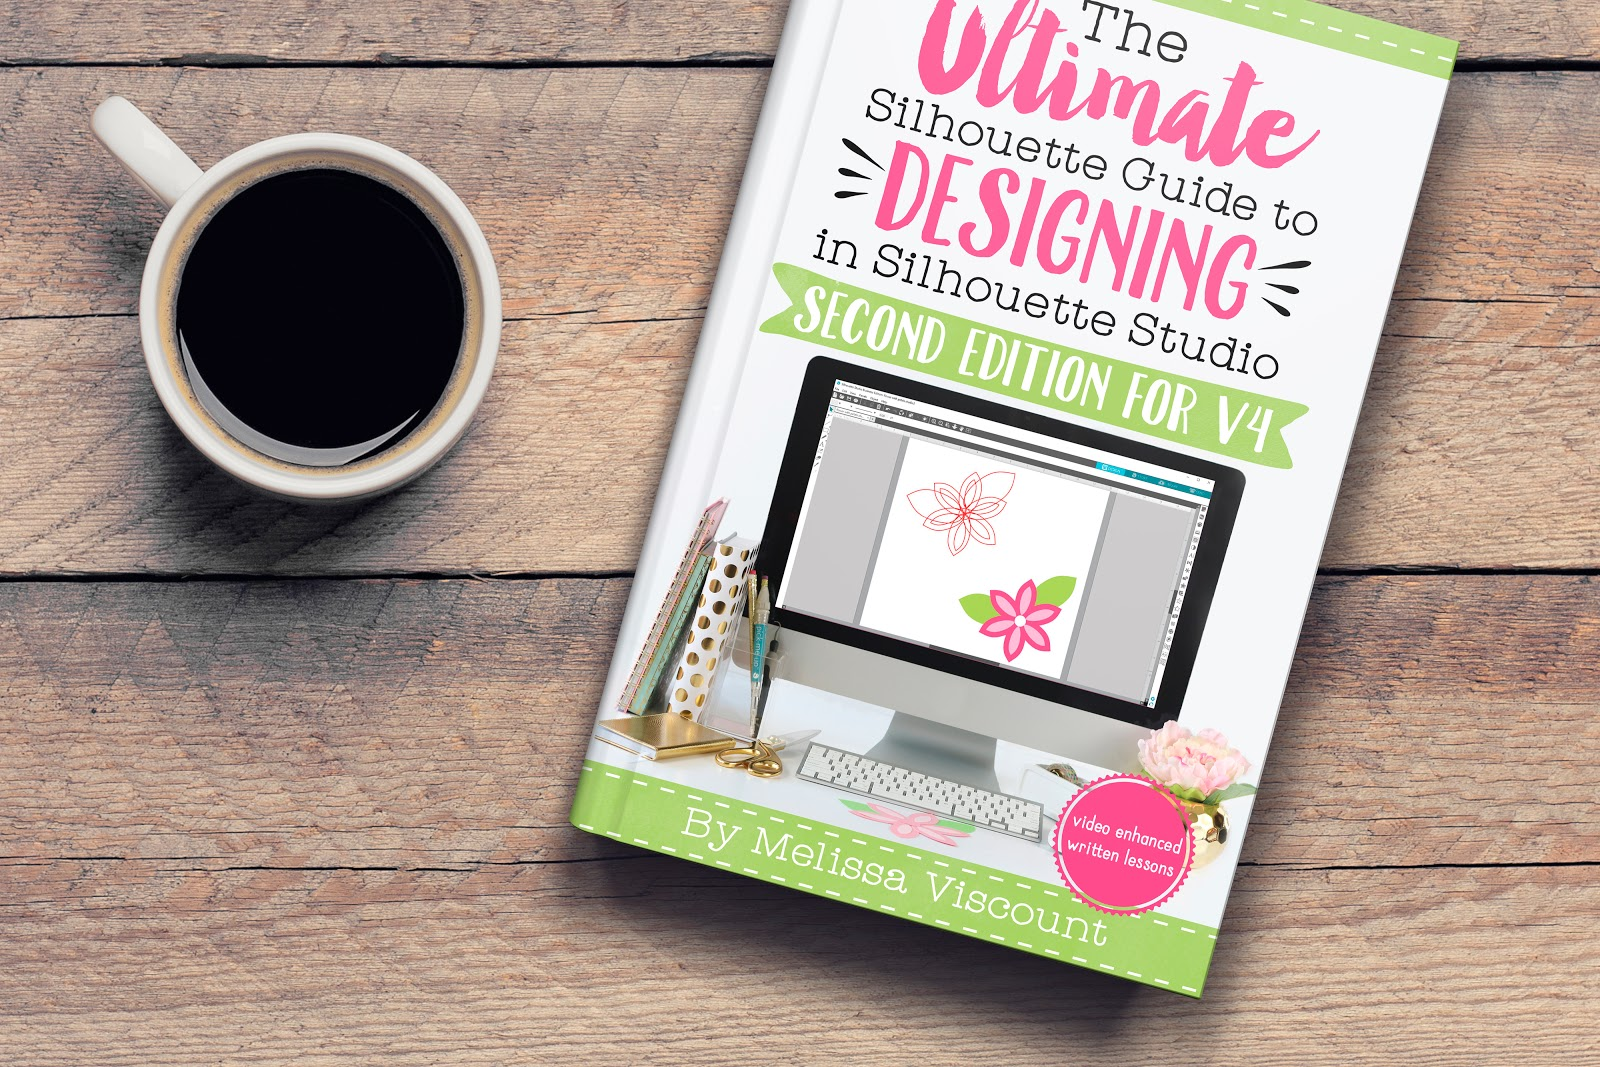 The ultimate silhouette guide series the silhouette studio design course will help you gain a firm understanding of the design editing and drawing tools and actions needed to create designs fandeluxe Images